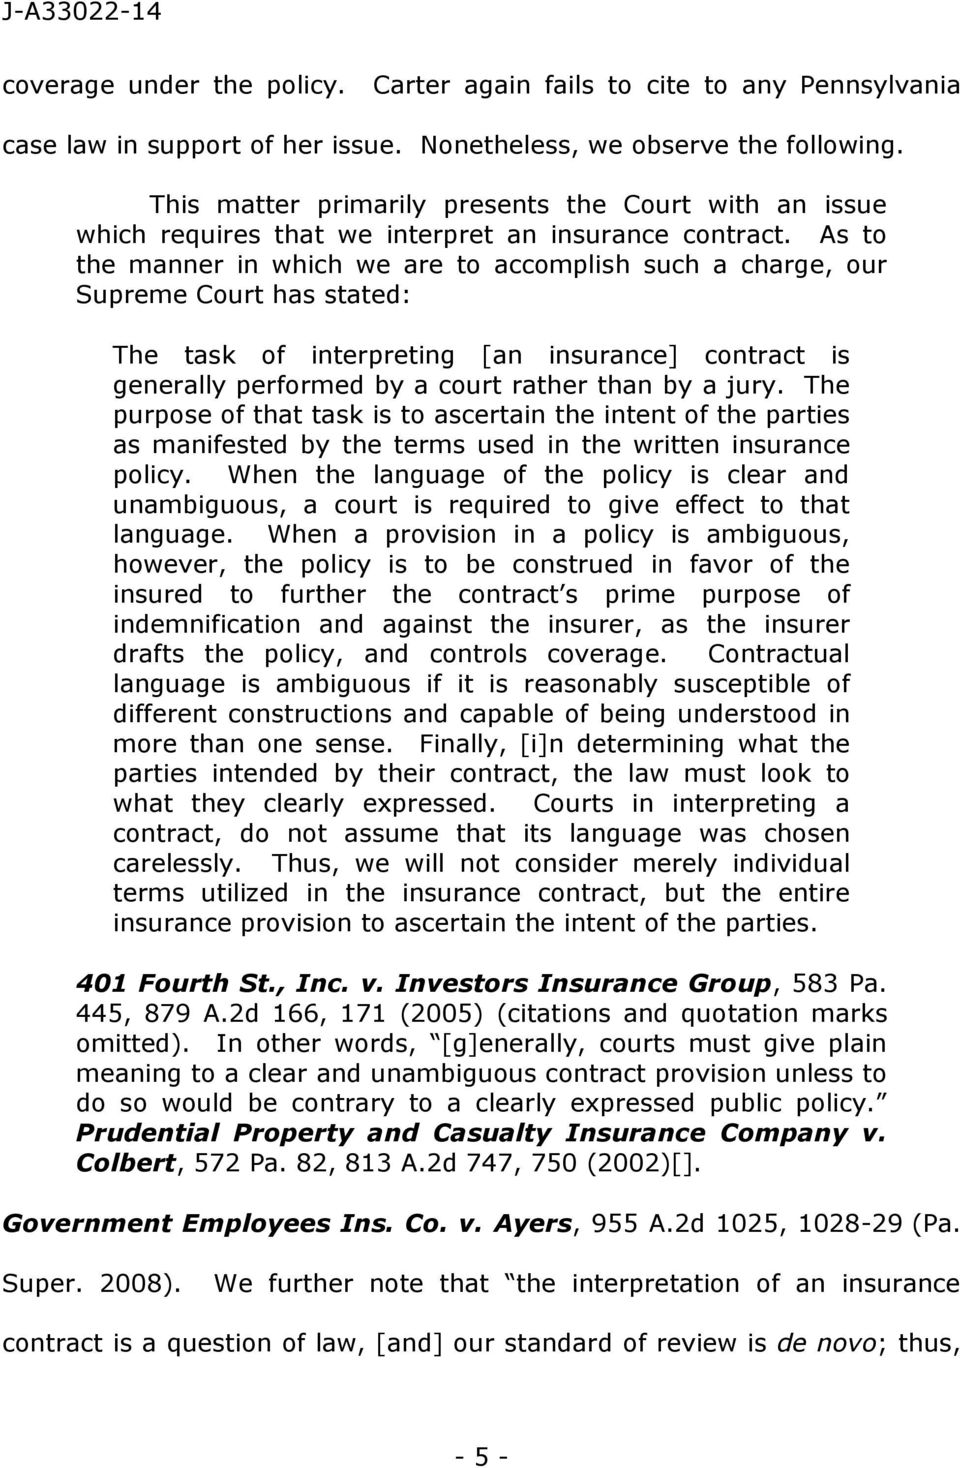 As to the manner in which we are to accomplish such a charge, our Supreme Court has stated The task of interpreting [an insurance] contract is generally performed by a court rather than by a jury.